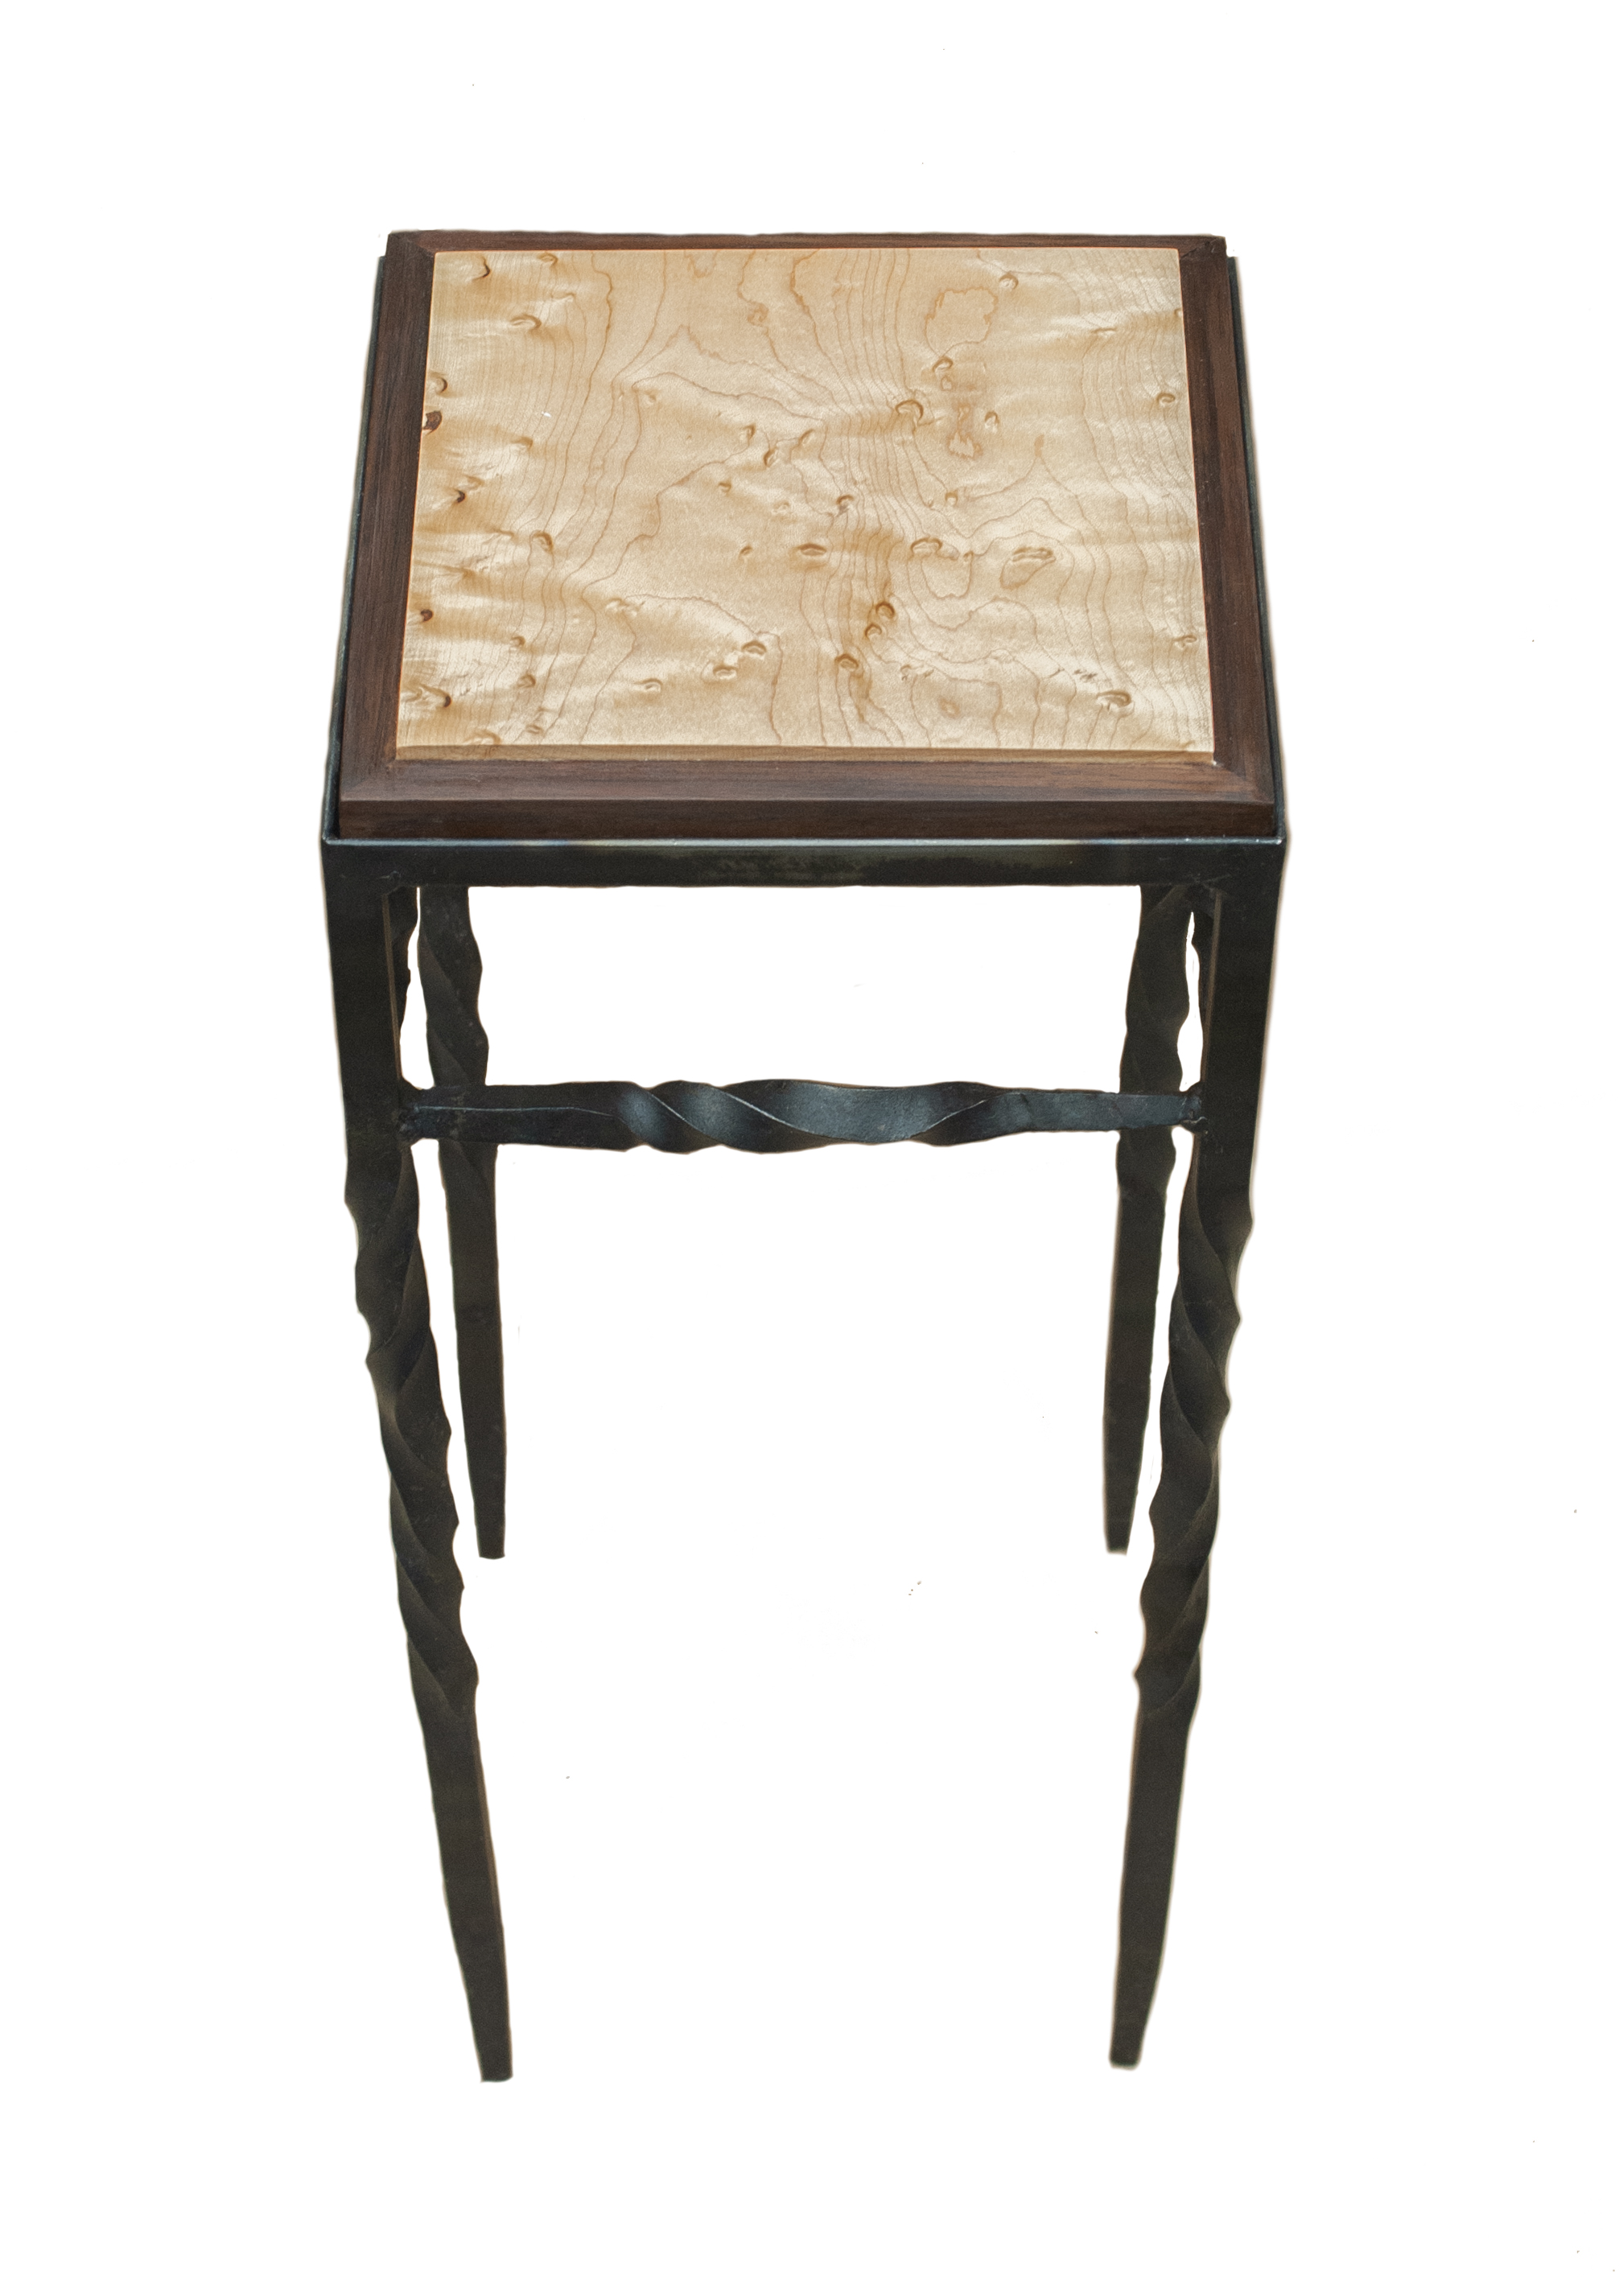 Forged Steel Table